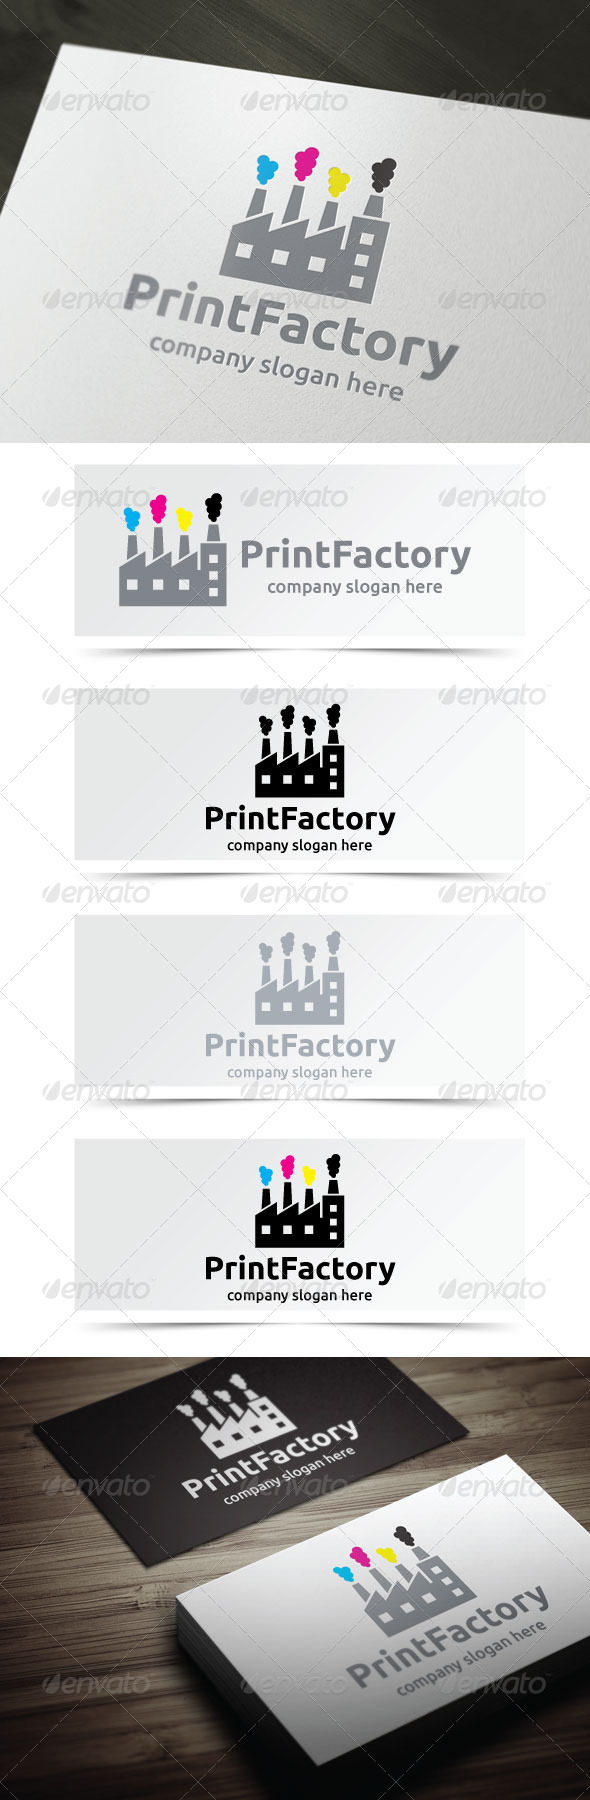 Print Factory - Buildings Logo Templates